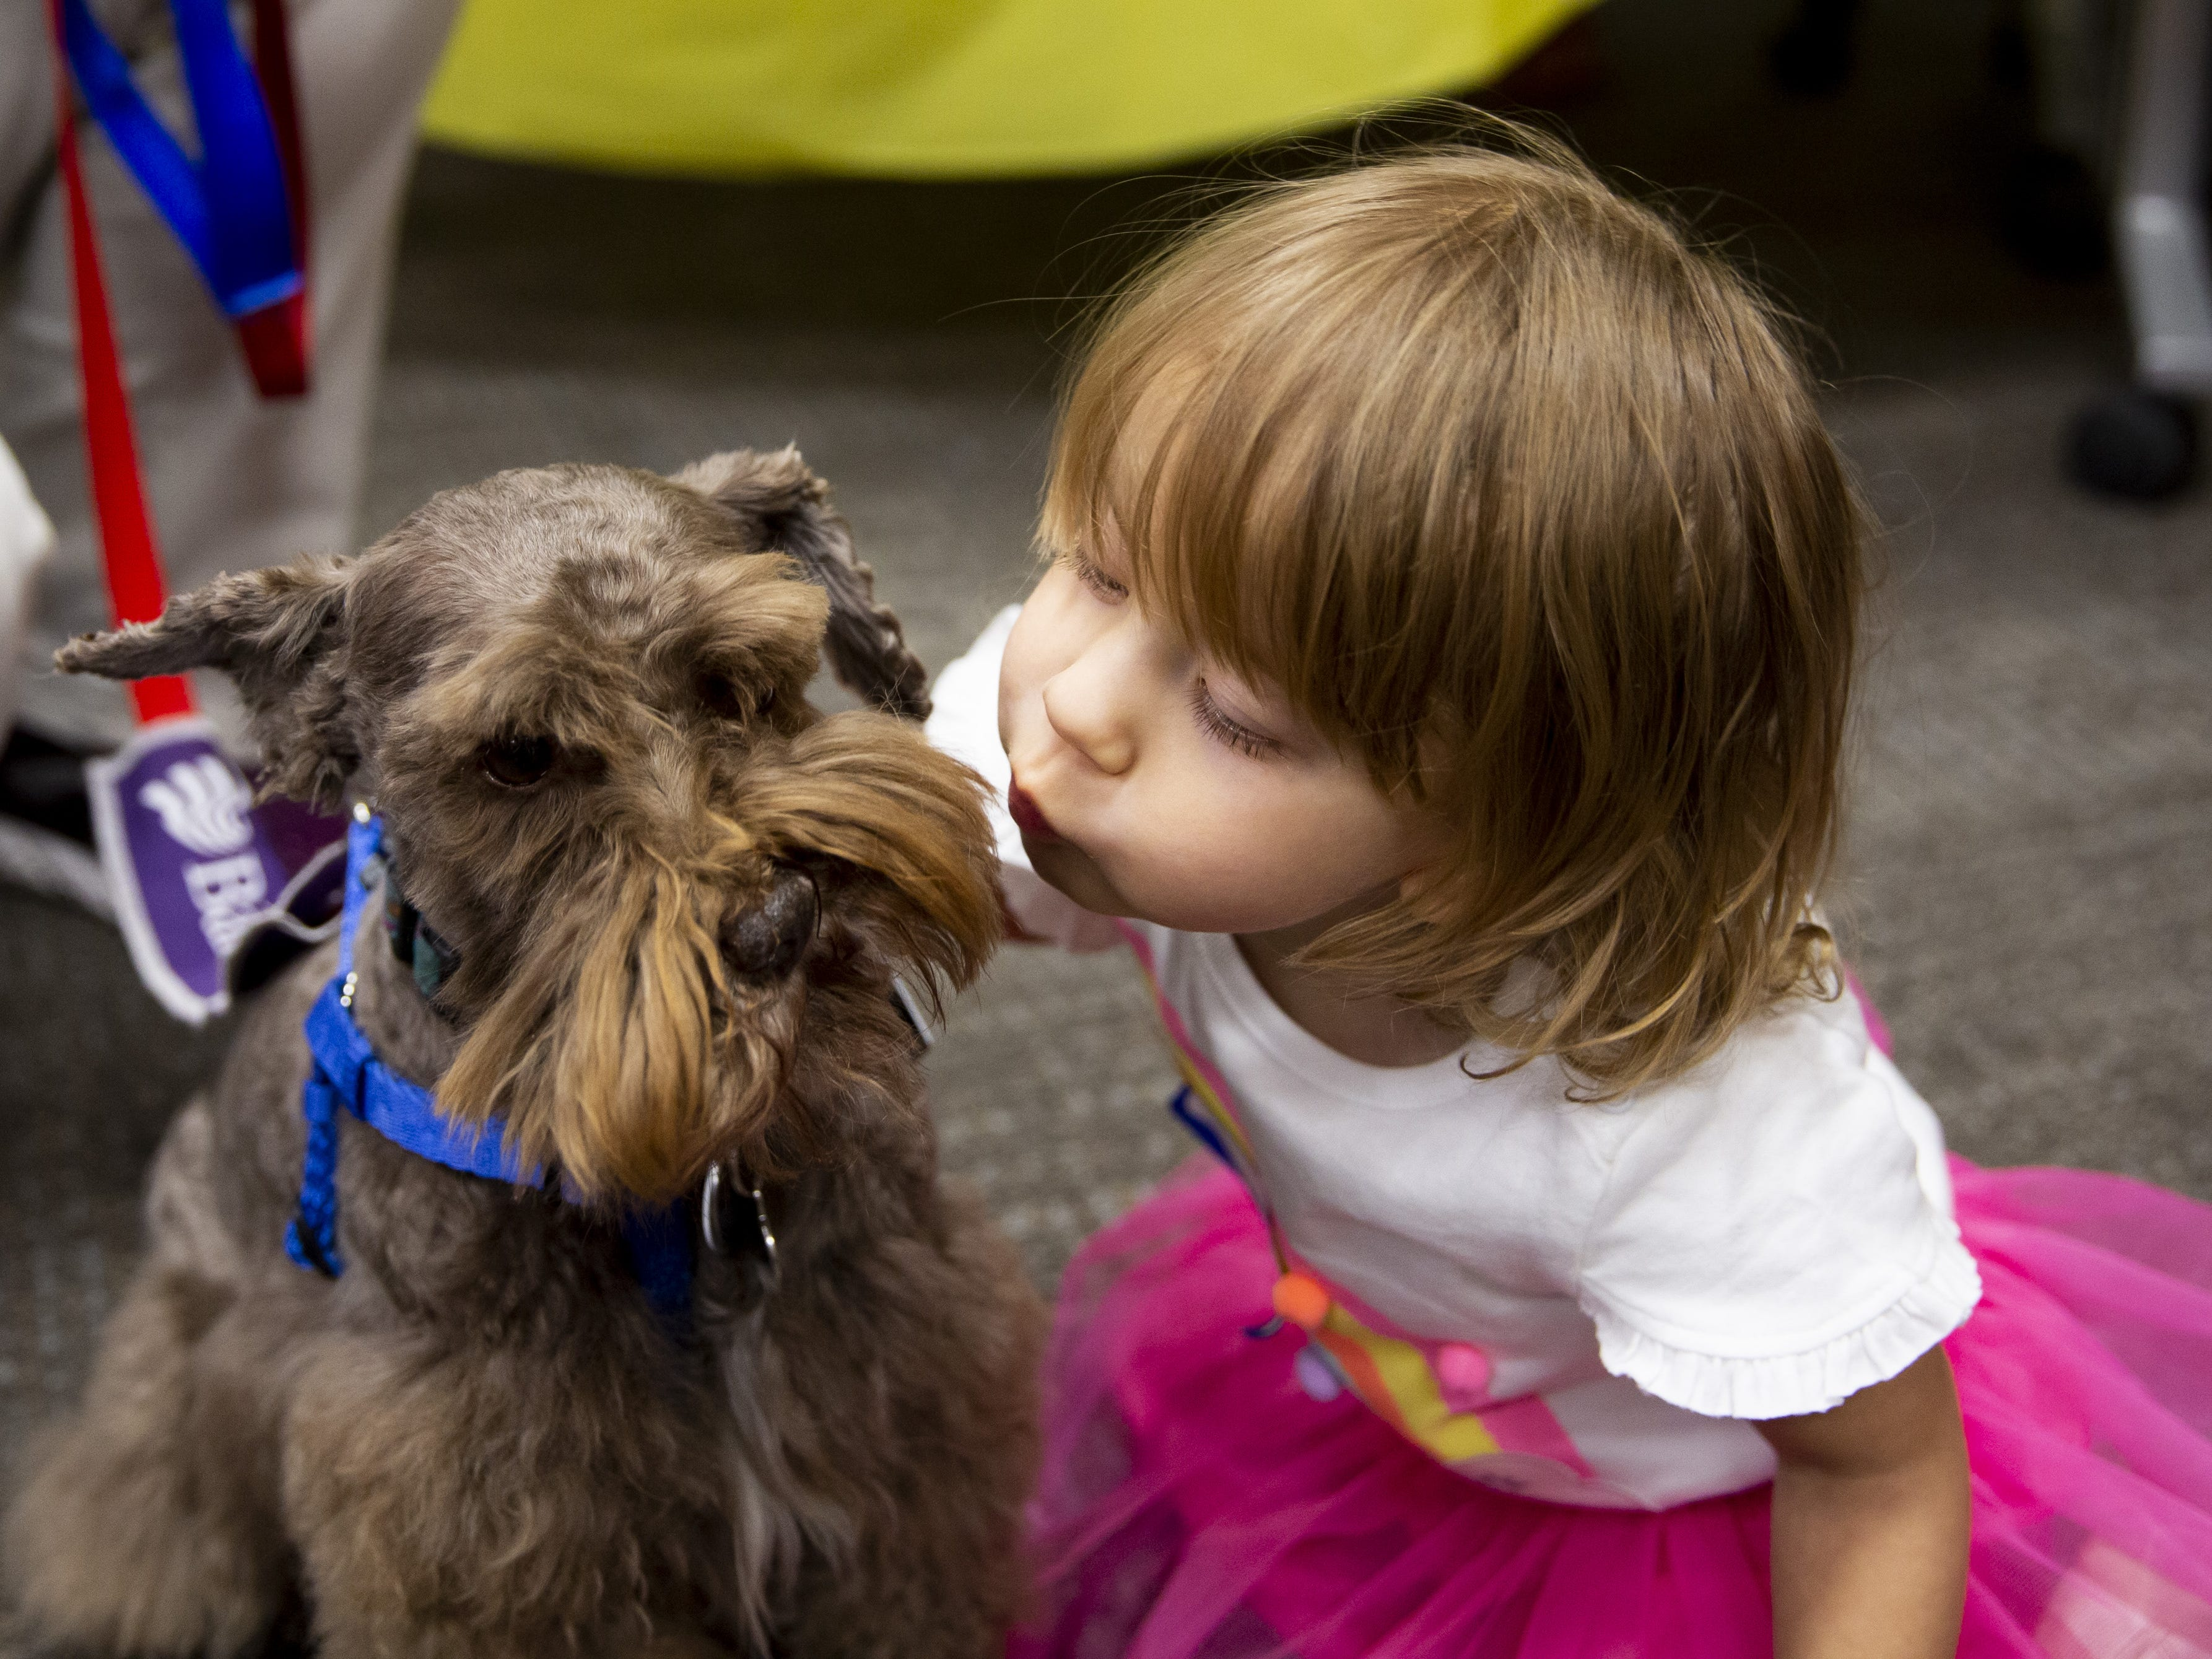 Kaydance Grimes, 2, gives Charlie the therapy dog a kiss during the Preemie NICU Reunion at Banner University Medical Center on April 13, 2019.